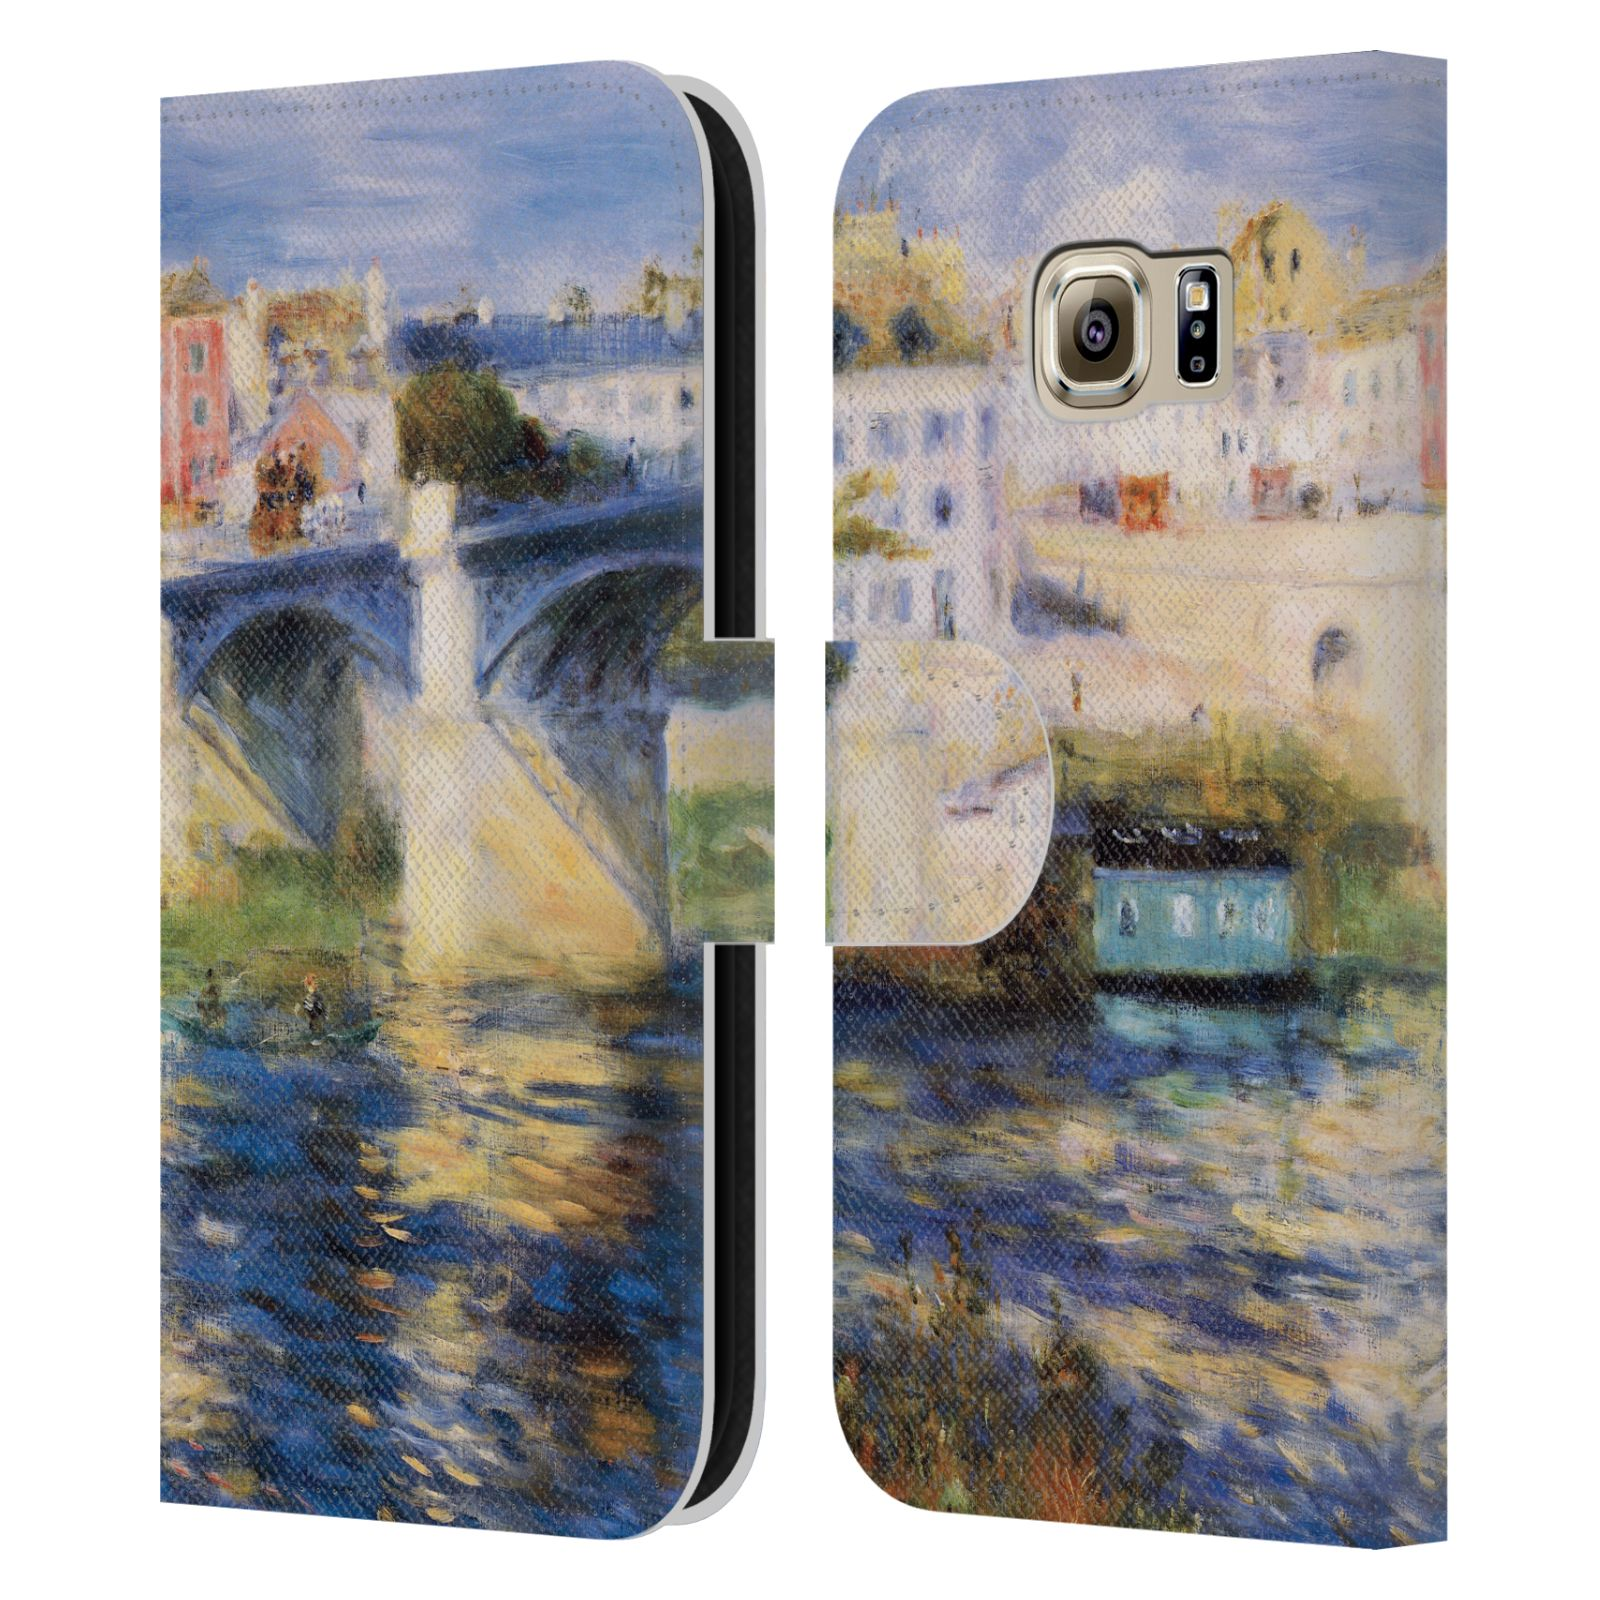 OFFICIAL-MASTERS-COLLECTION-PAINTINGS-1-LEATHER-BOOK-CASE-FOR-SAMSUNG-PHONES-1